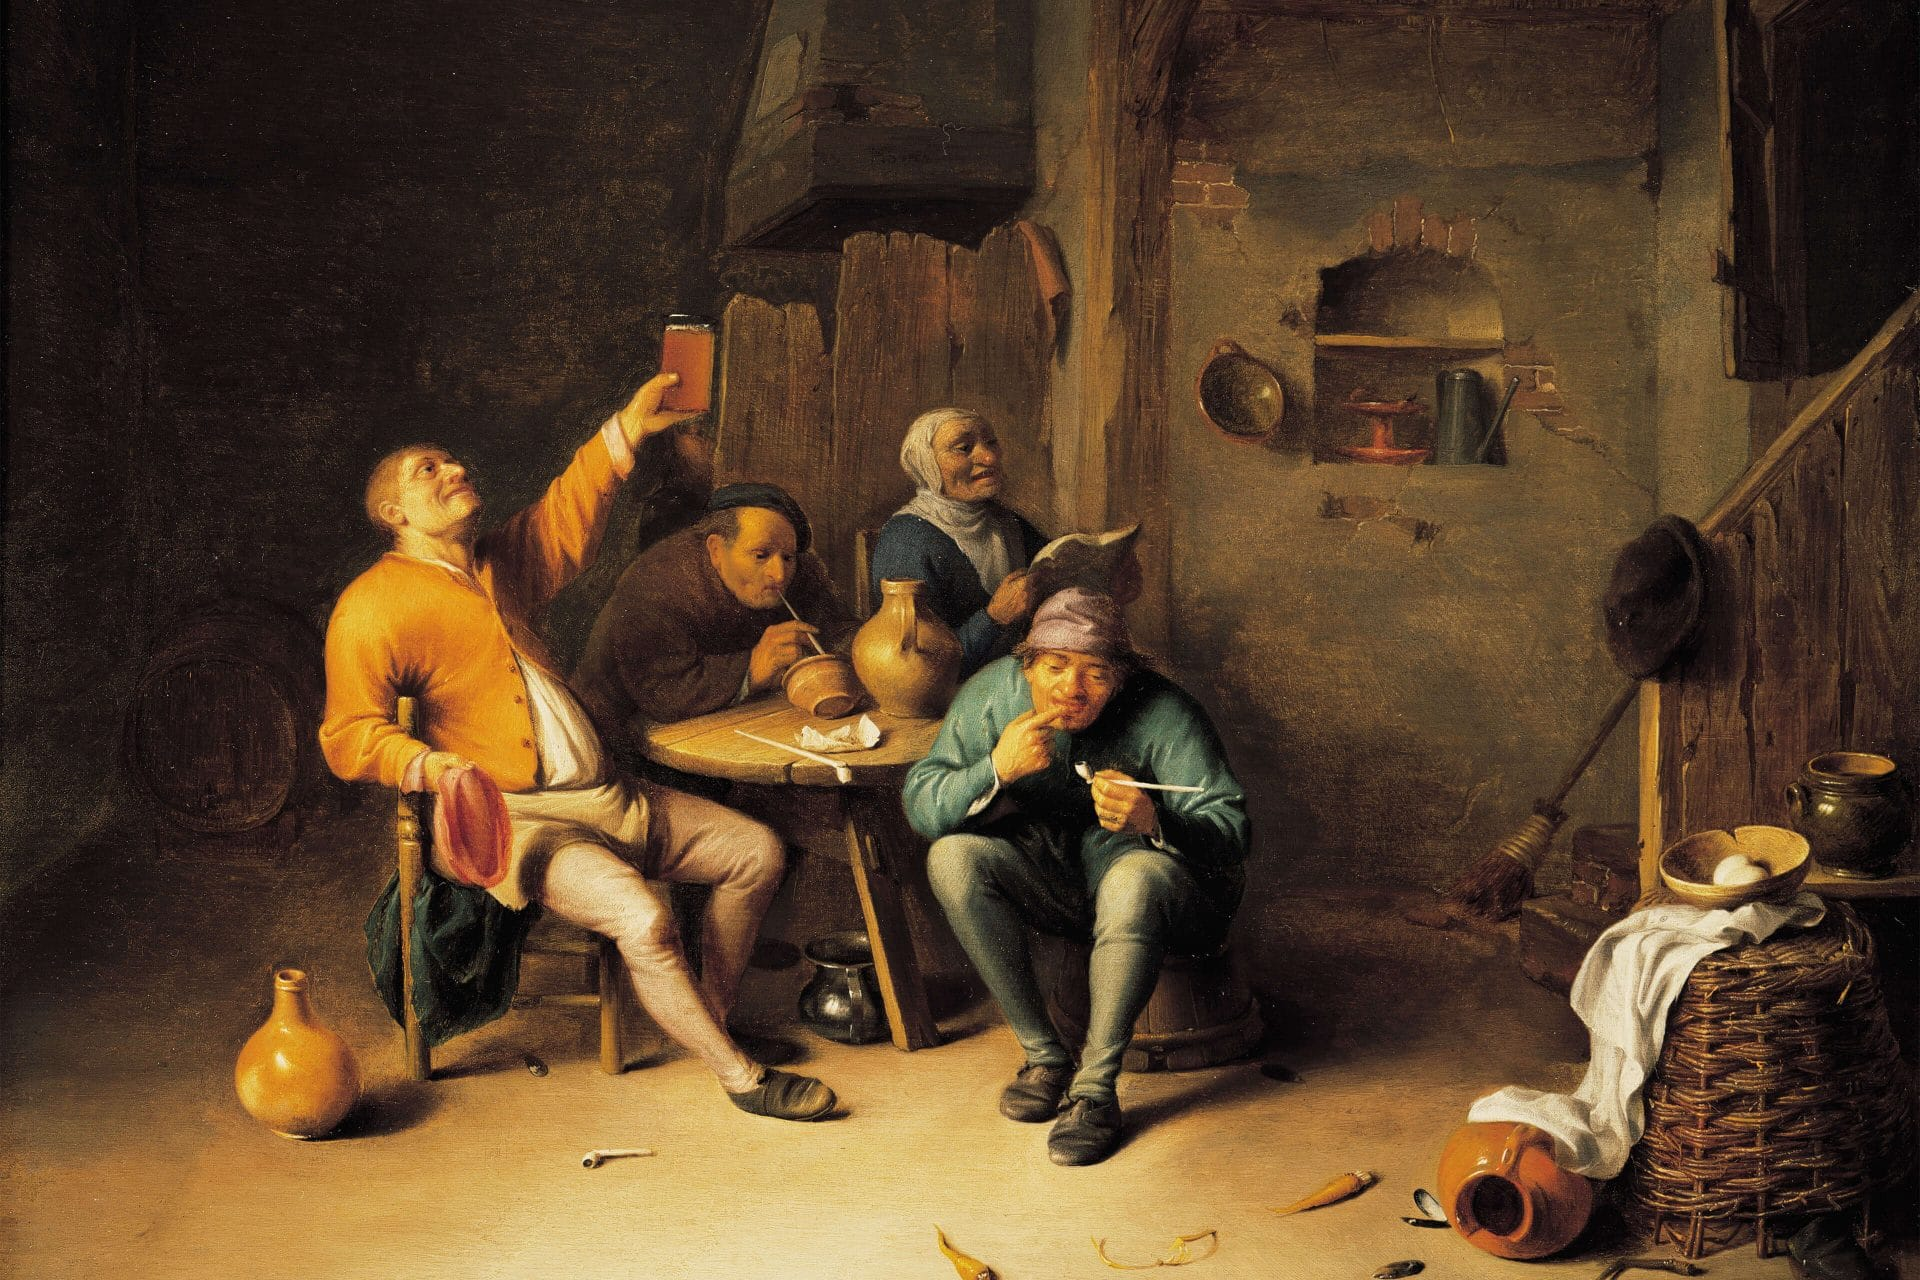 Hendrick Martensz Sorgh, Farmers Smoking and Drinking in a Tavern, c.1650.